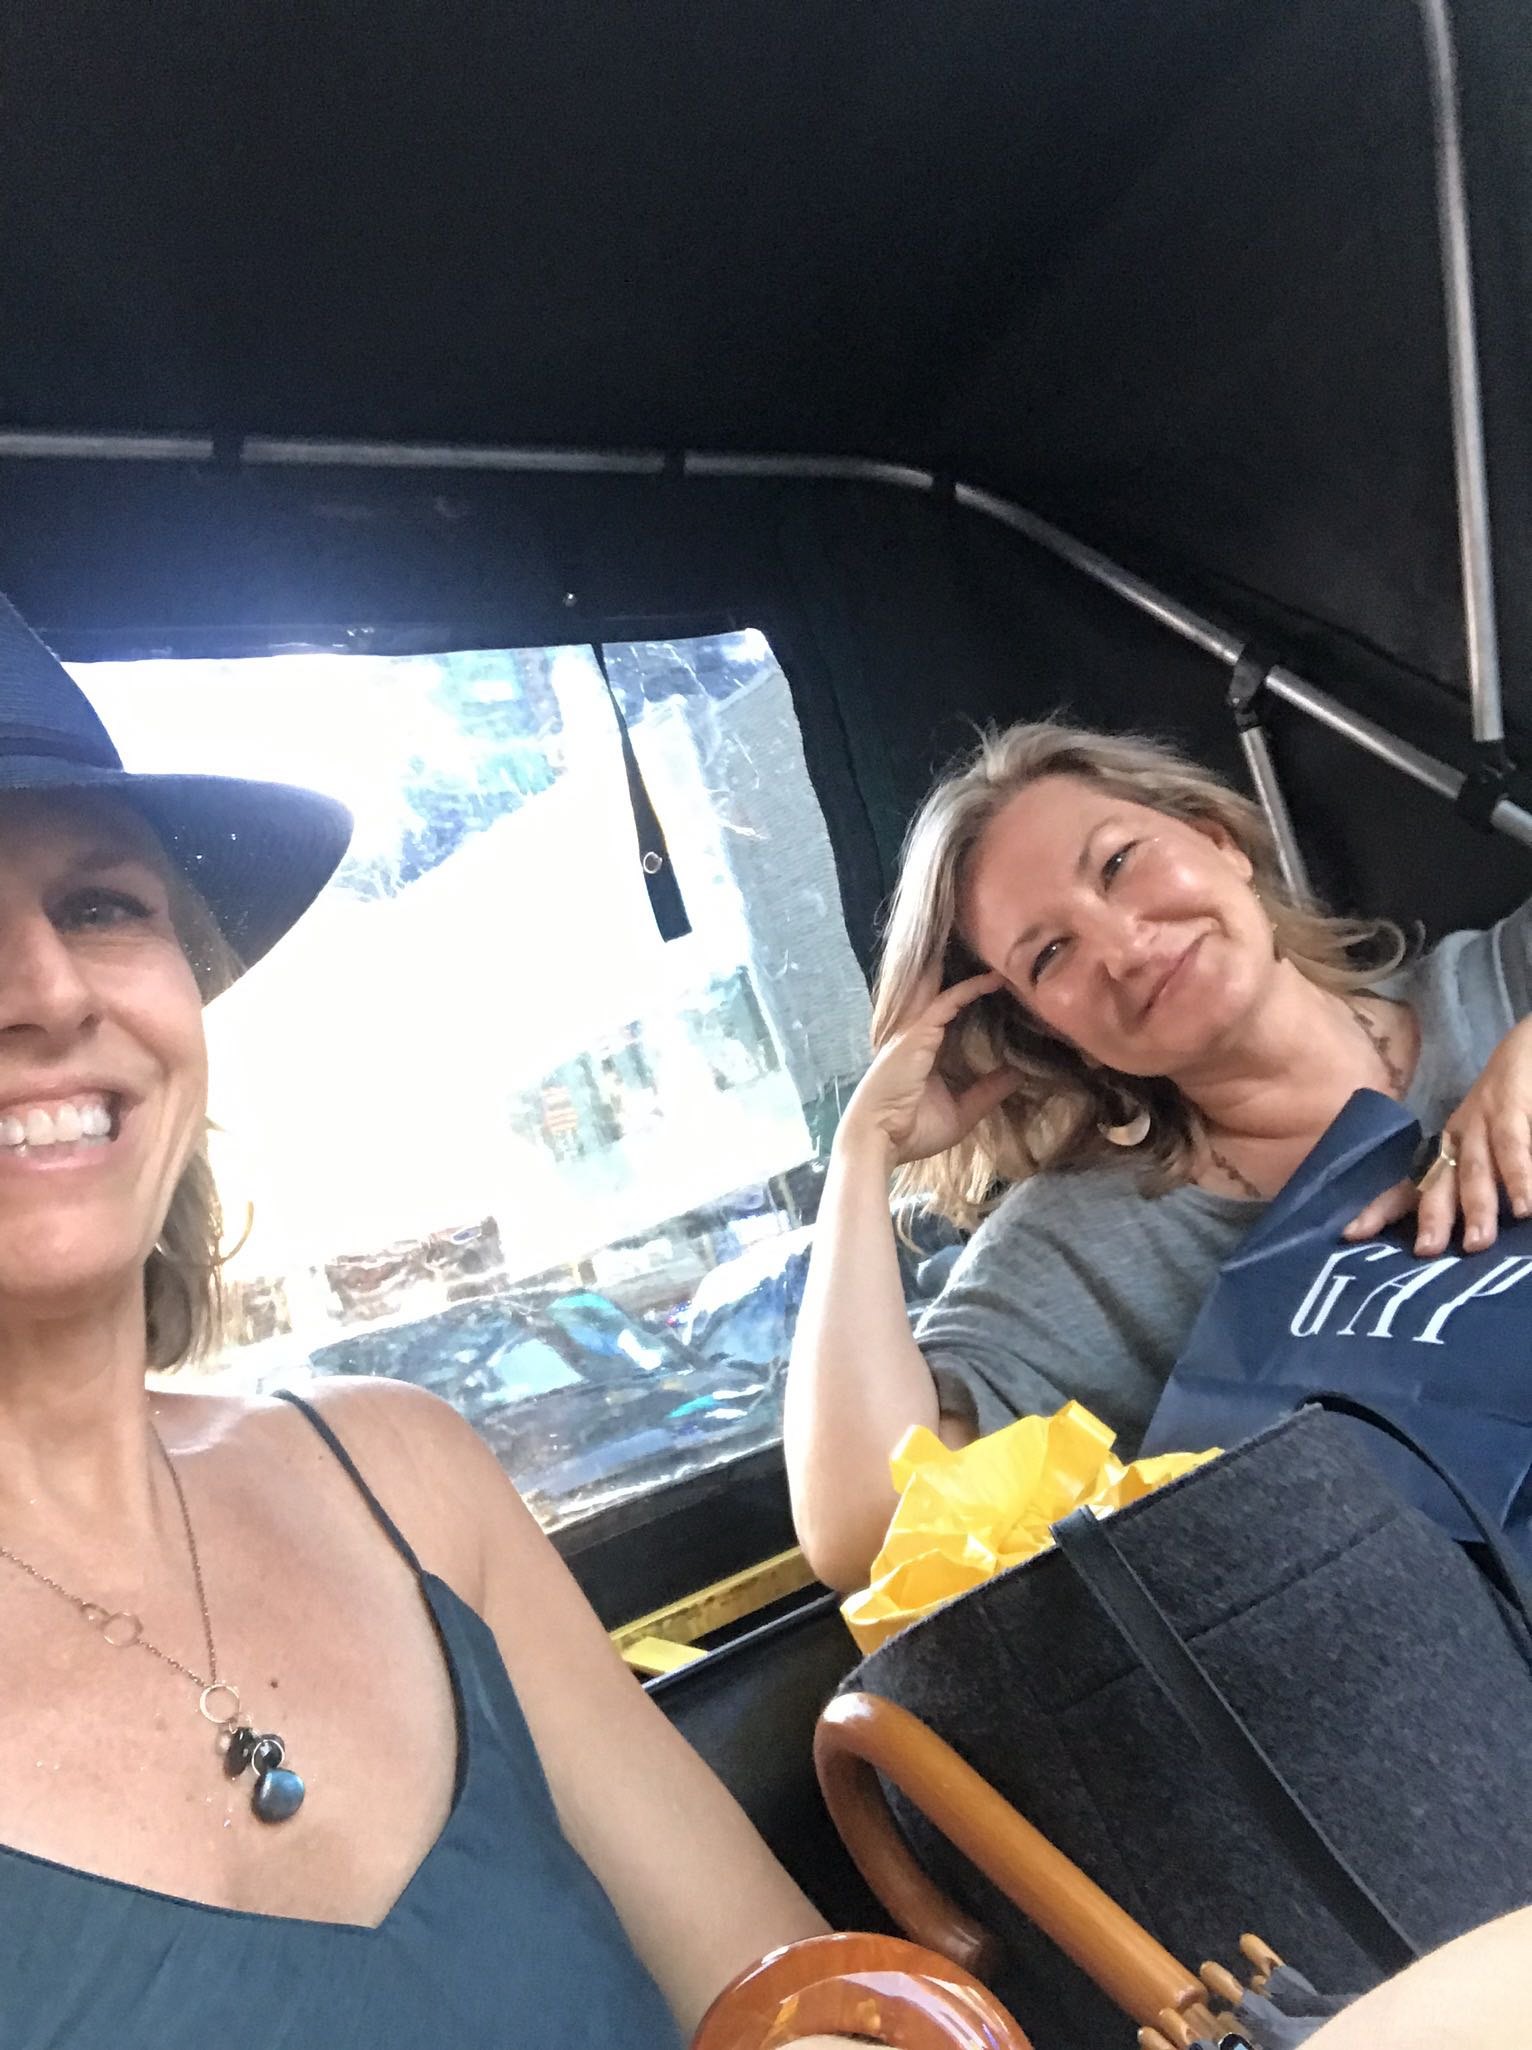 Good friends riding in a pedicab in New York City